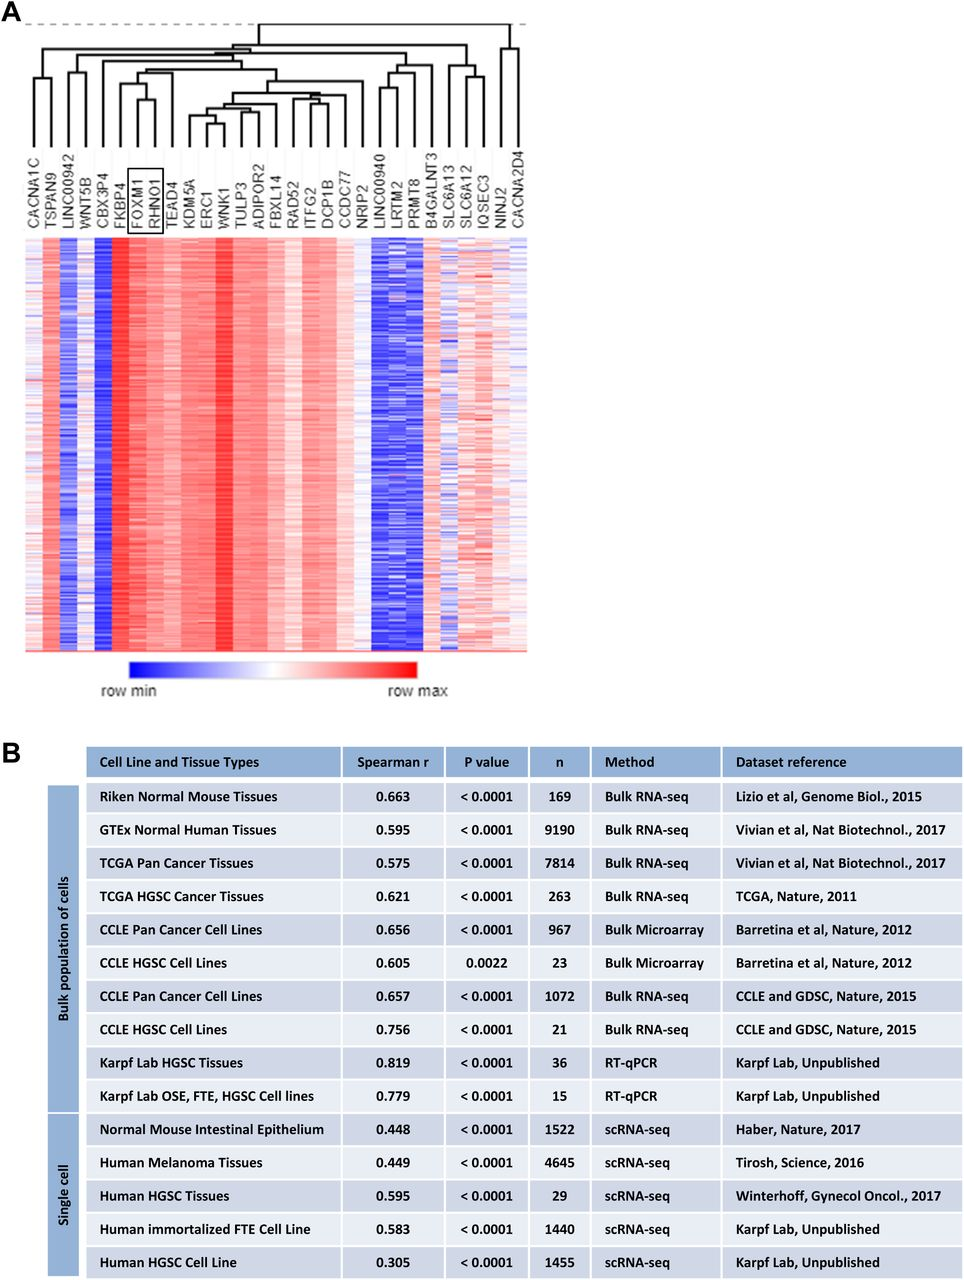 Co-regulation and functional cooperativity of FOXM1 and